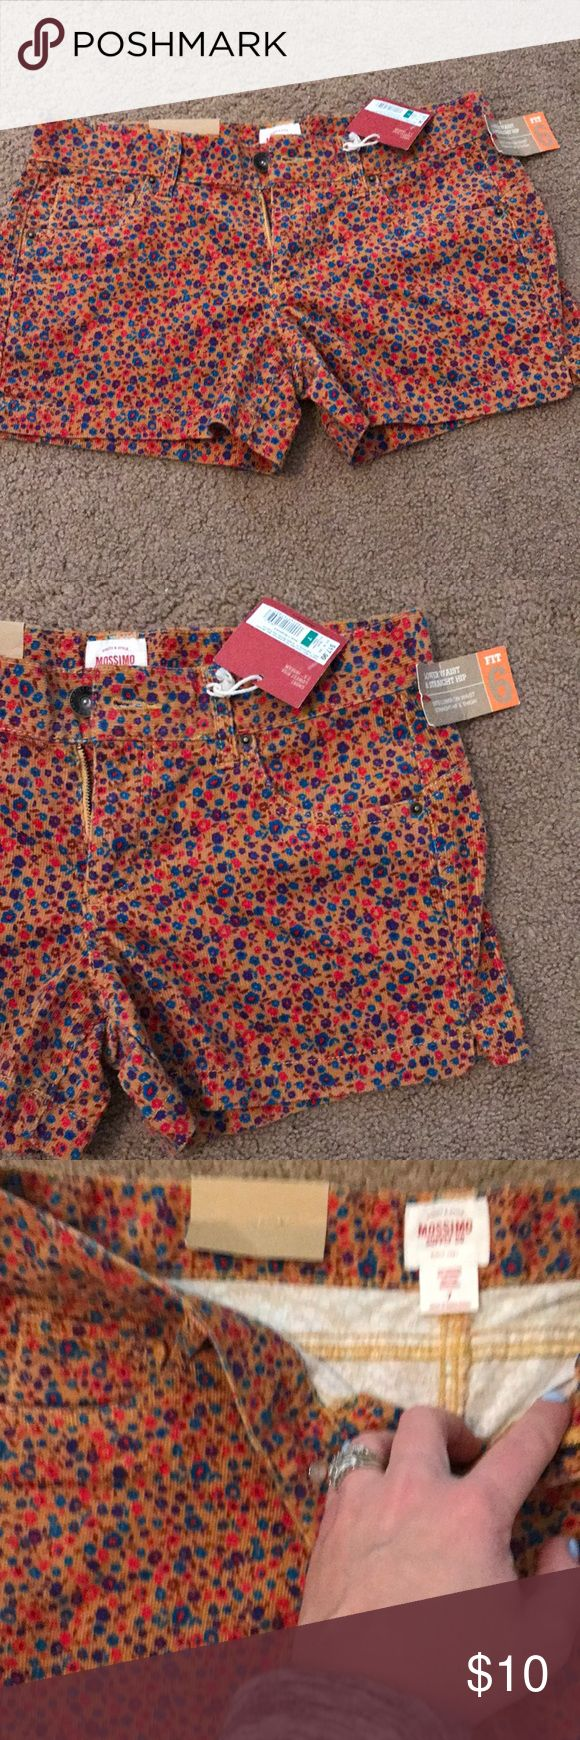 Women's shorts Women's Beautiful corduroy floral shorts. Size 7 NET Never worn Mossimo Supply Co. Other